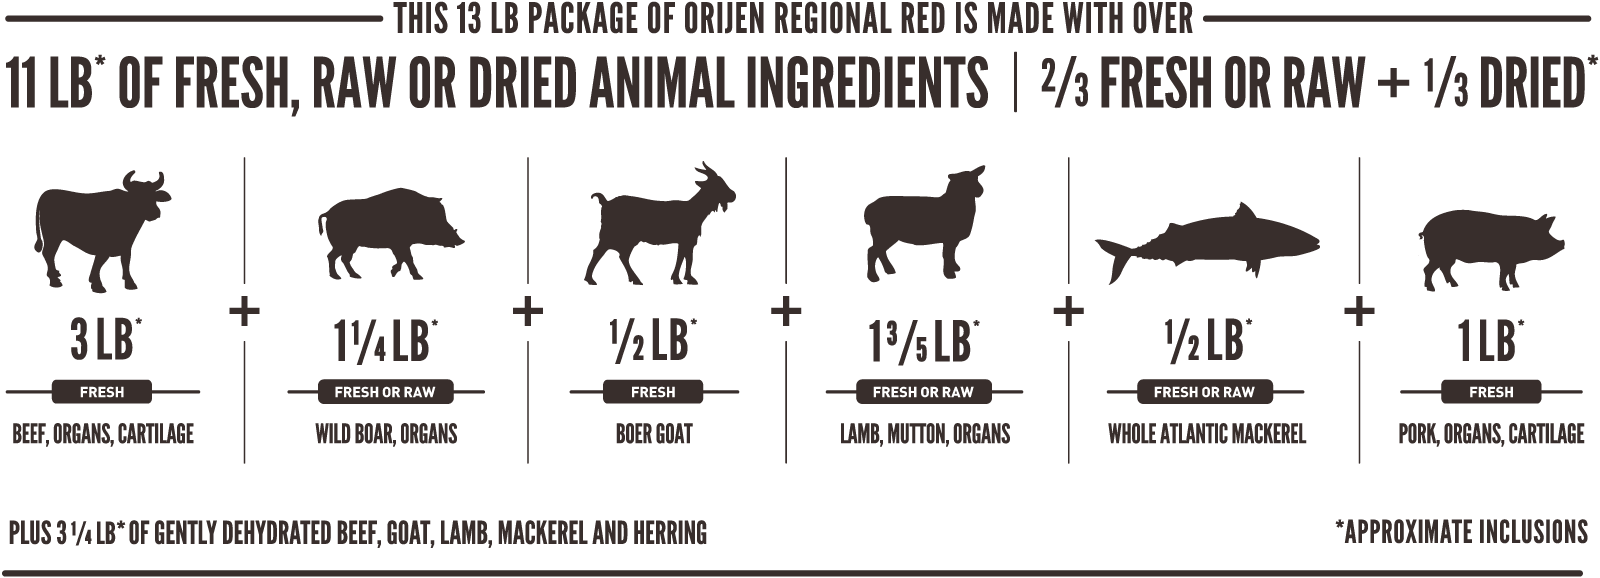 ORIJEN Regional Red Meatmath Formula and Dog Food Ingredients